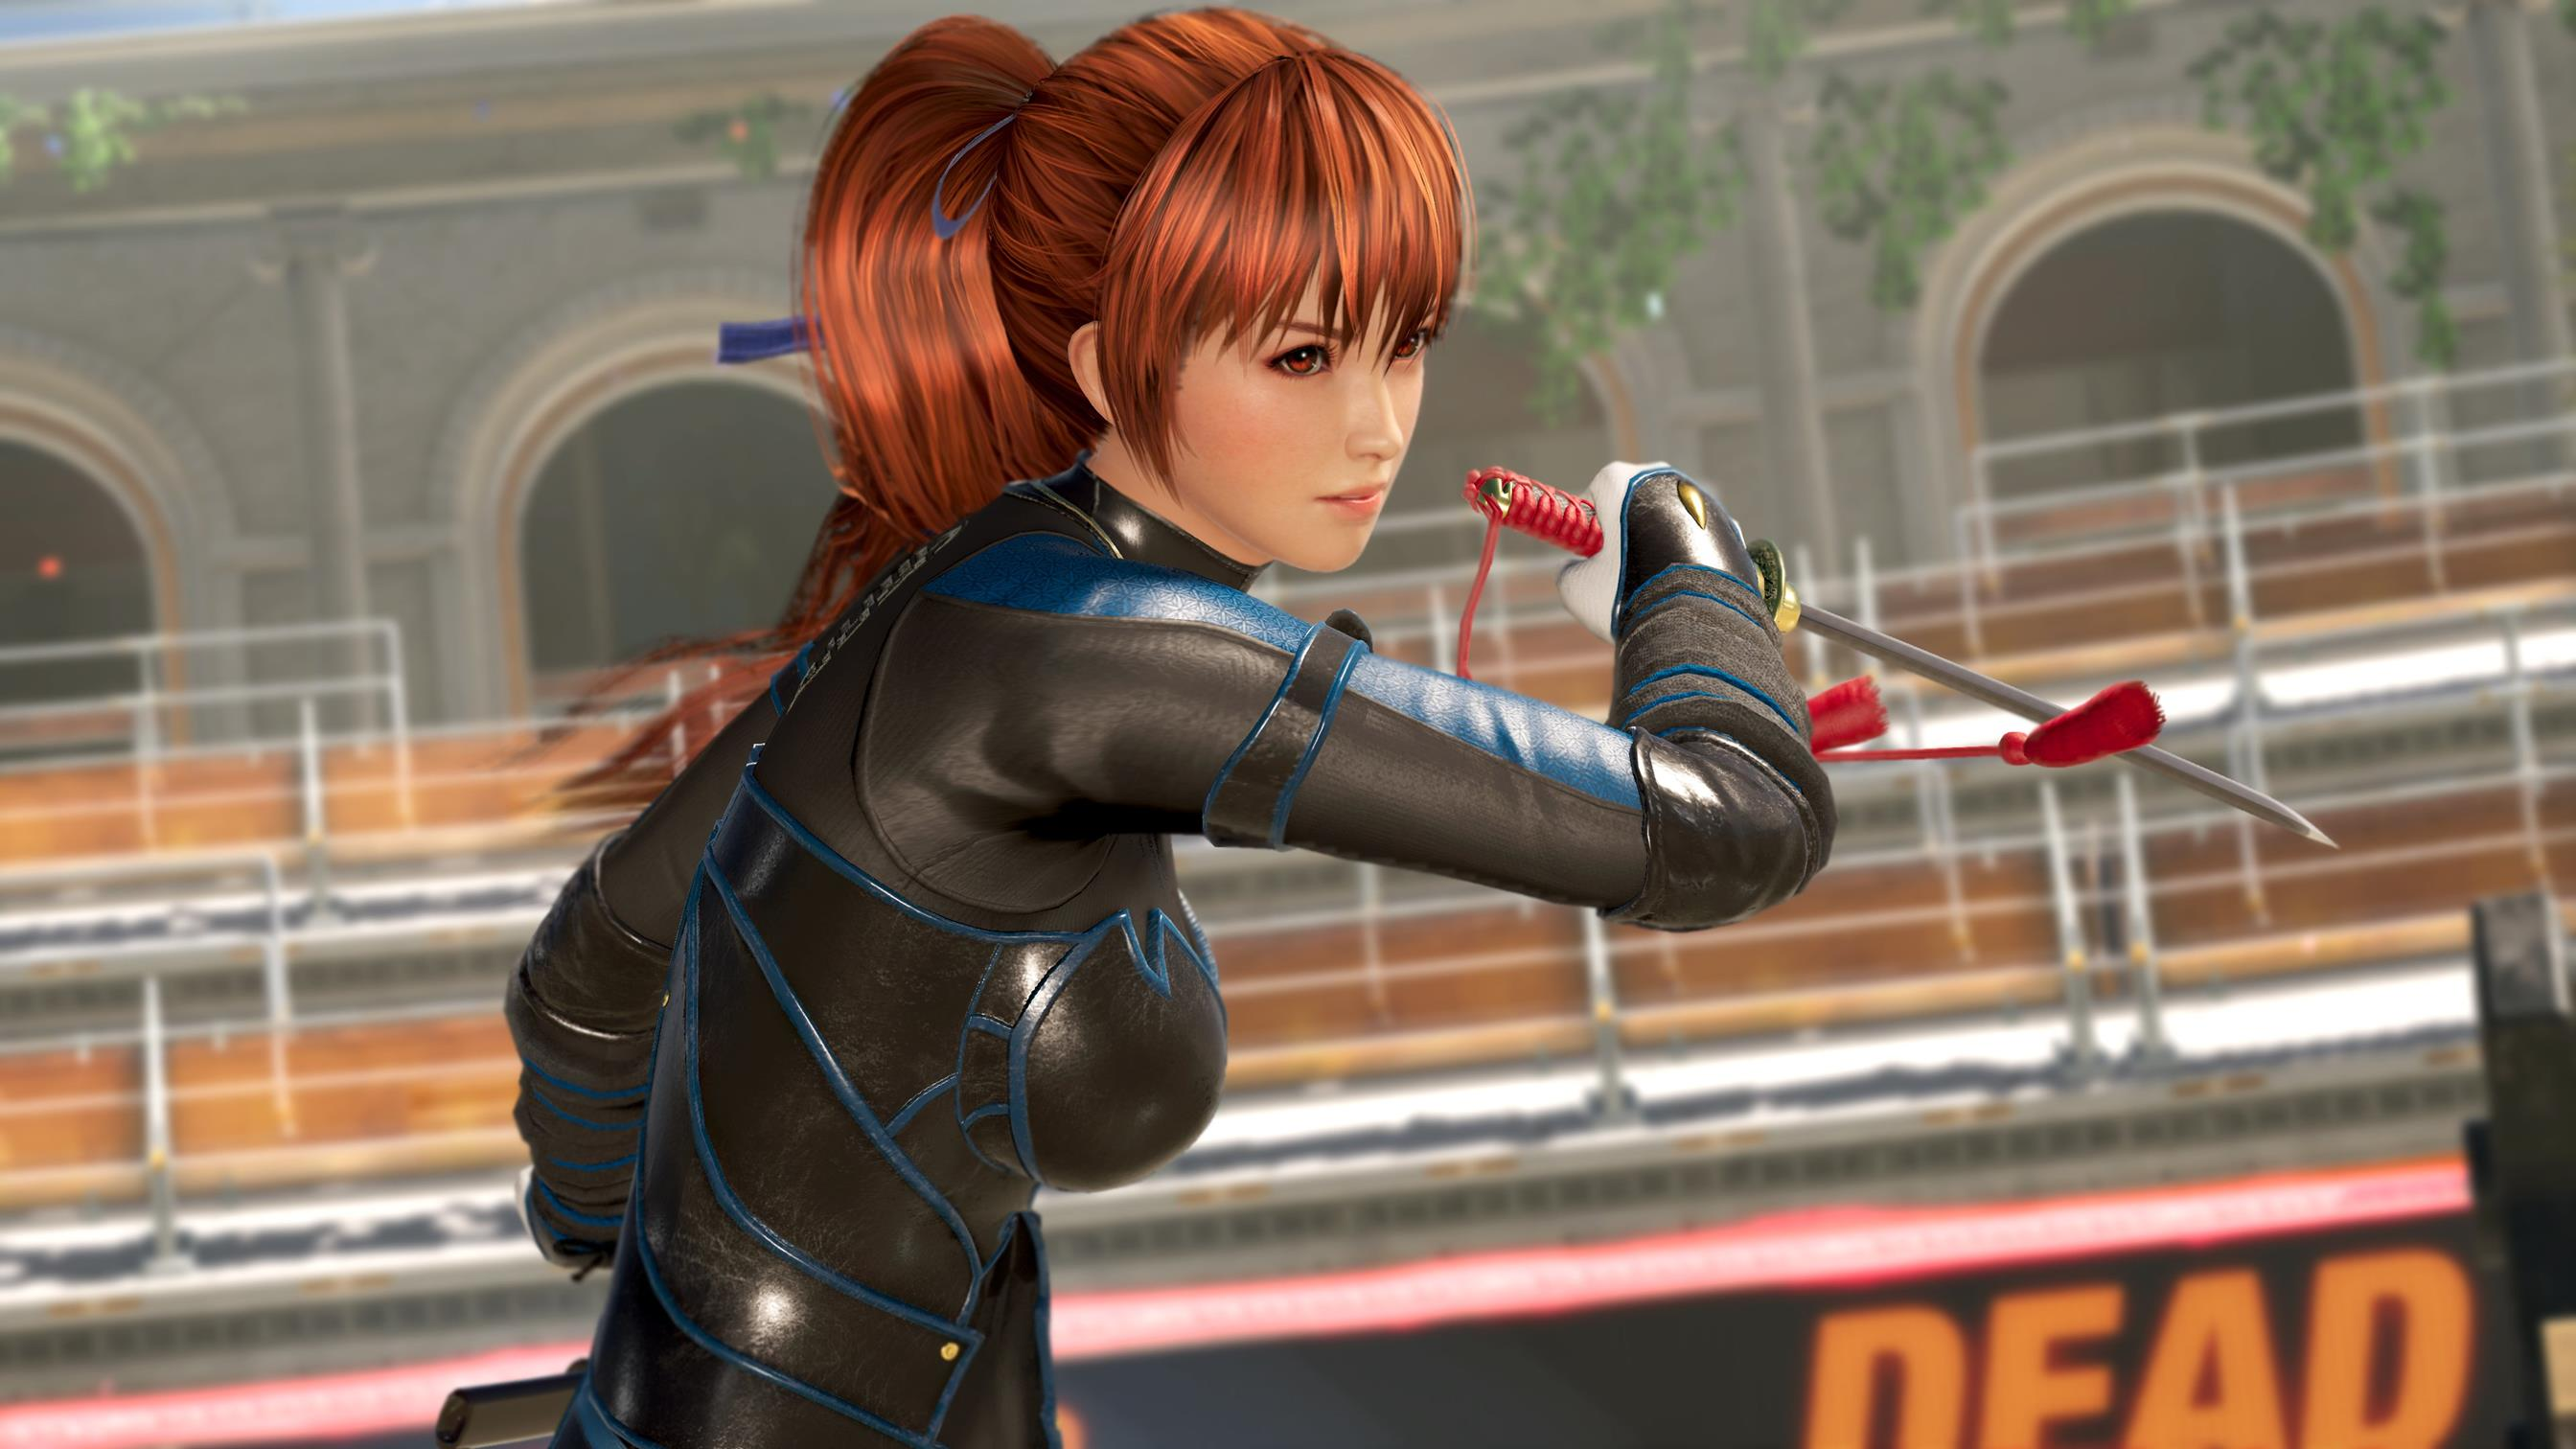 'Dead or Alive 6' Coming to Consoles and Steam in 2019